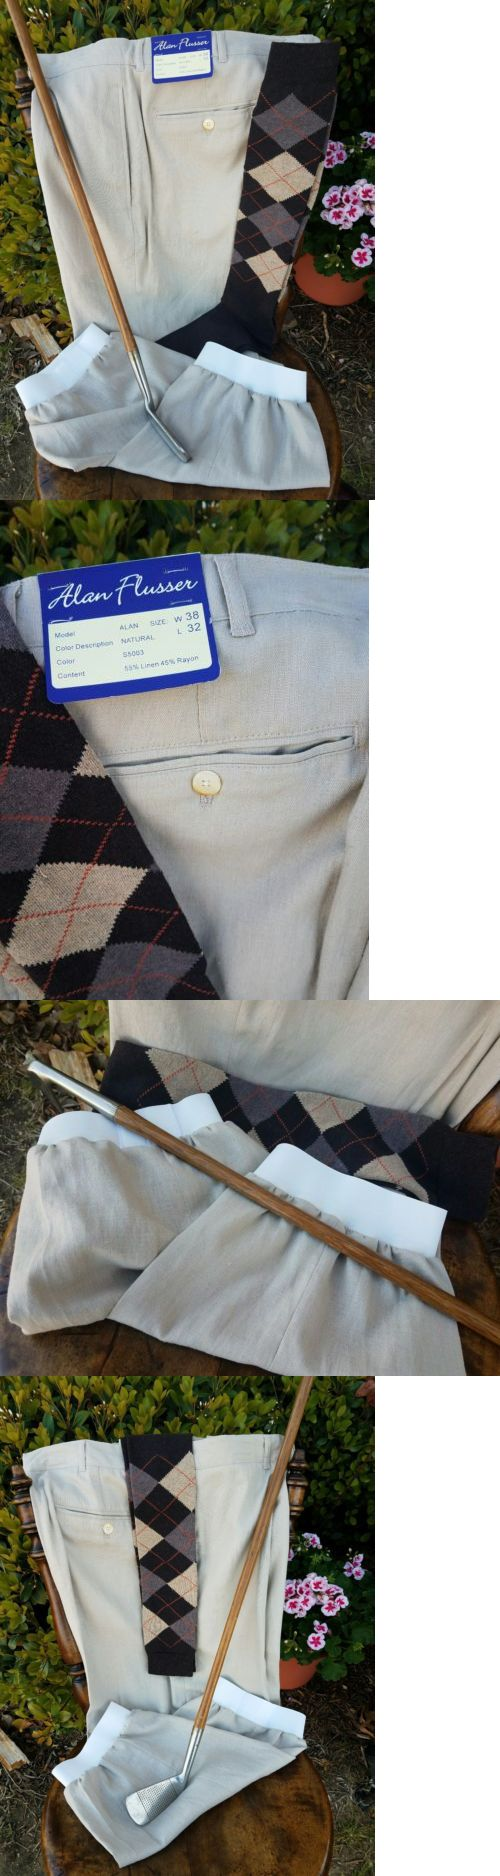 Other Golf Clothing 158939: Golf Knickers 38 Nwt! Alan Flusser Linen Rayon! New Argyles! Nice! -> BUY IT NOW ONLY: $34.95 on eBay!